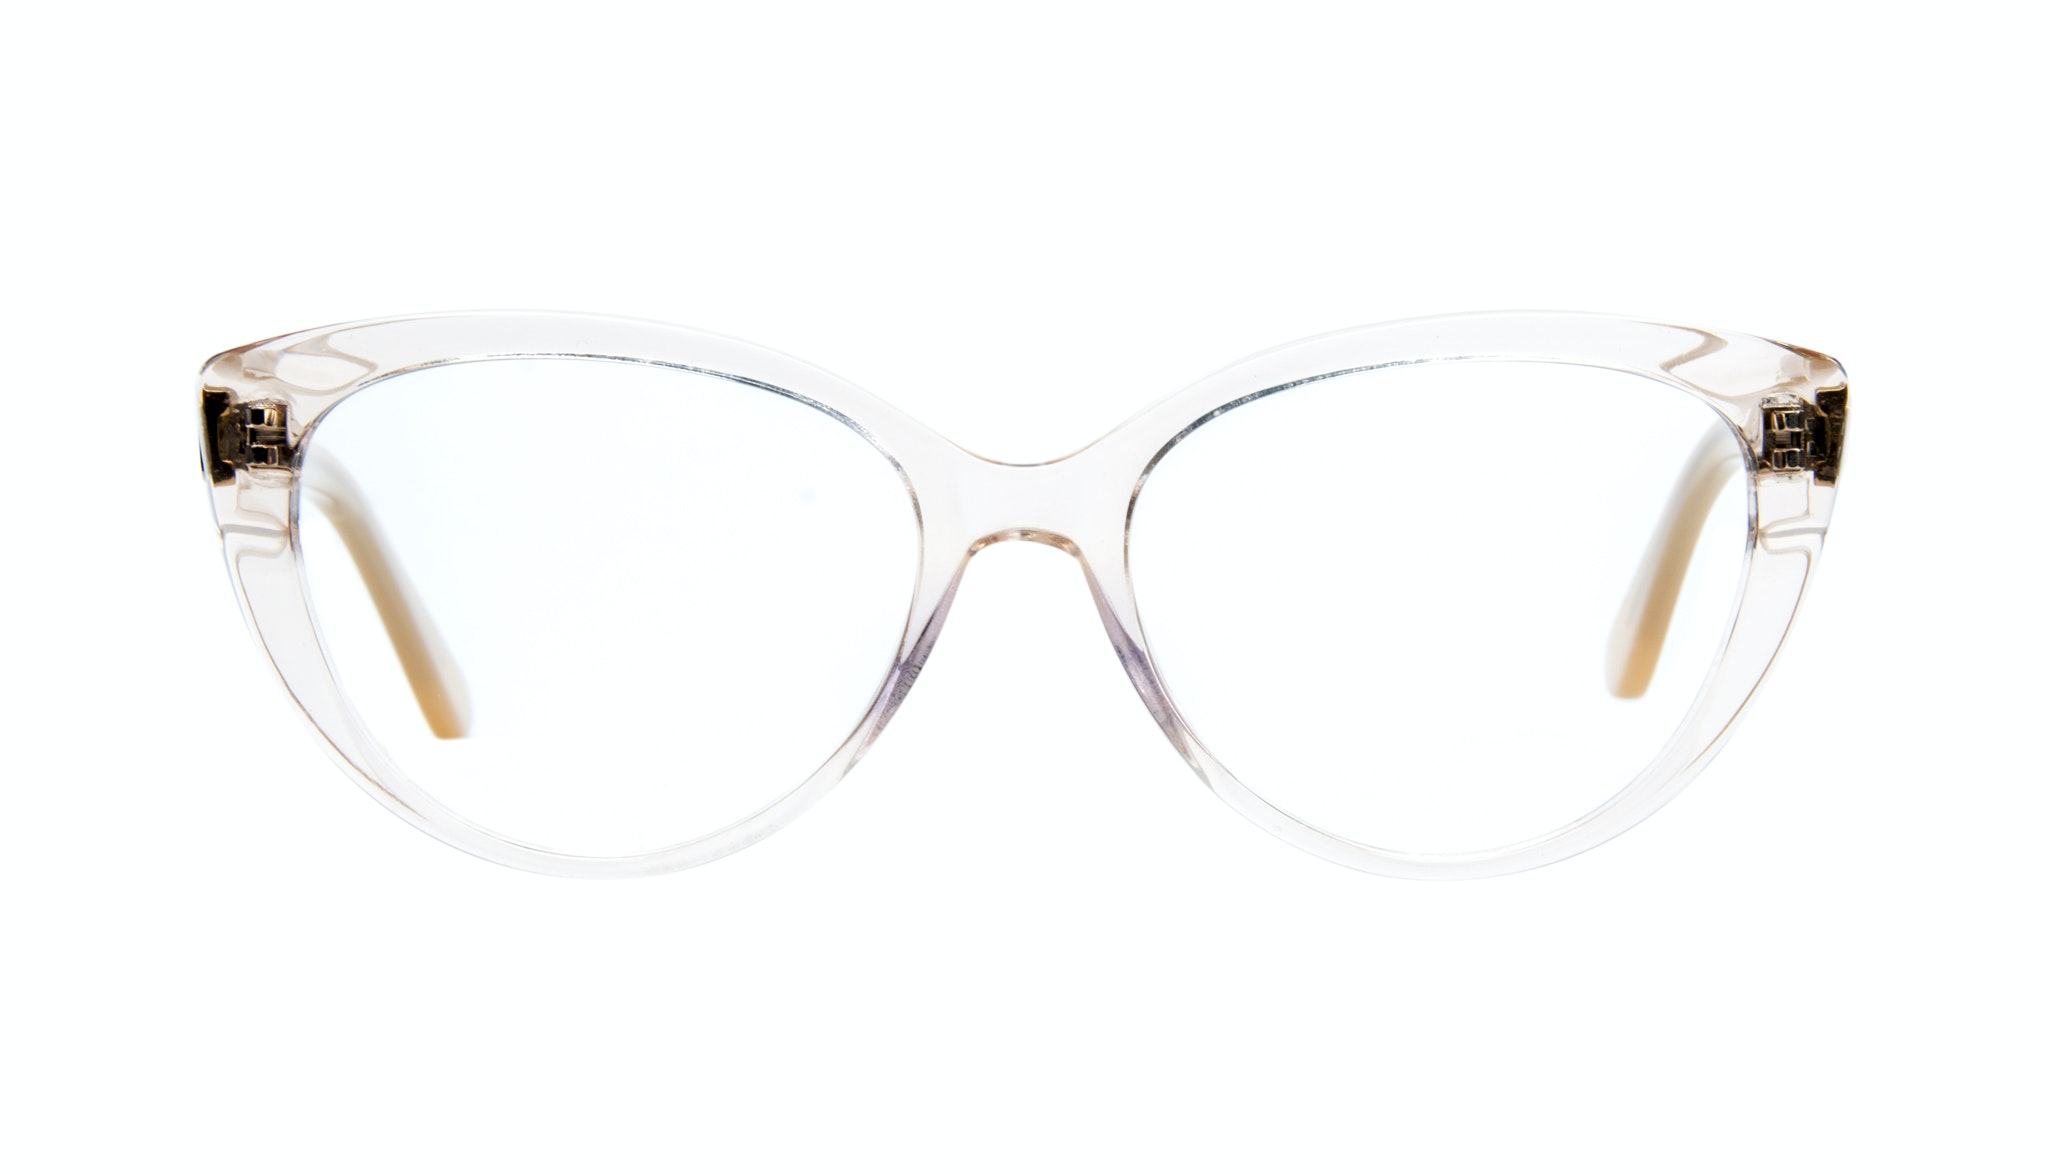 Affordable Fashion Glasses Cat Eye Eyeglasses Women Bliss Blond Metal Front